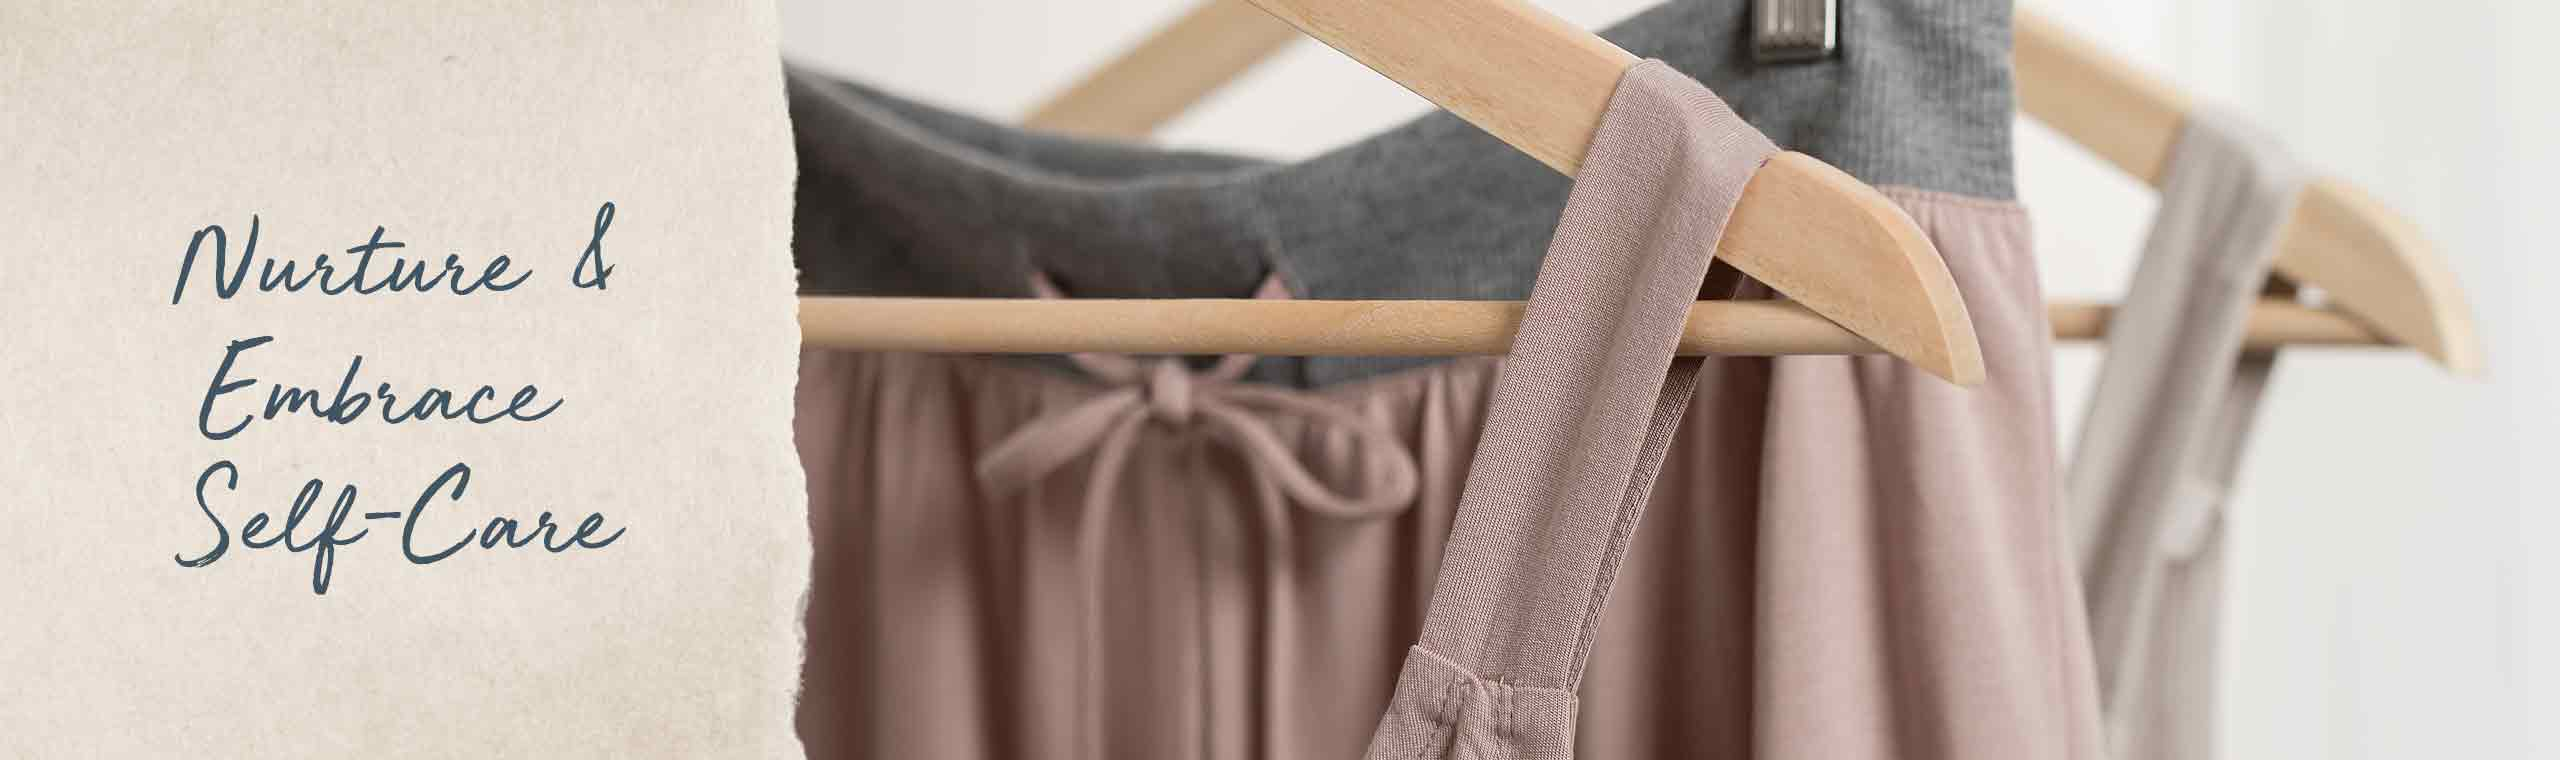 Nurture and Embrace self-care! comfortable apparel hanging on hangers